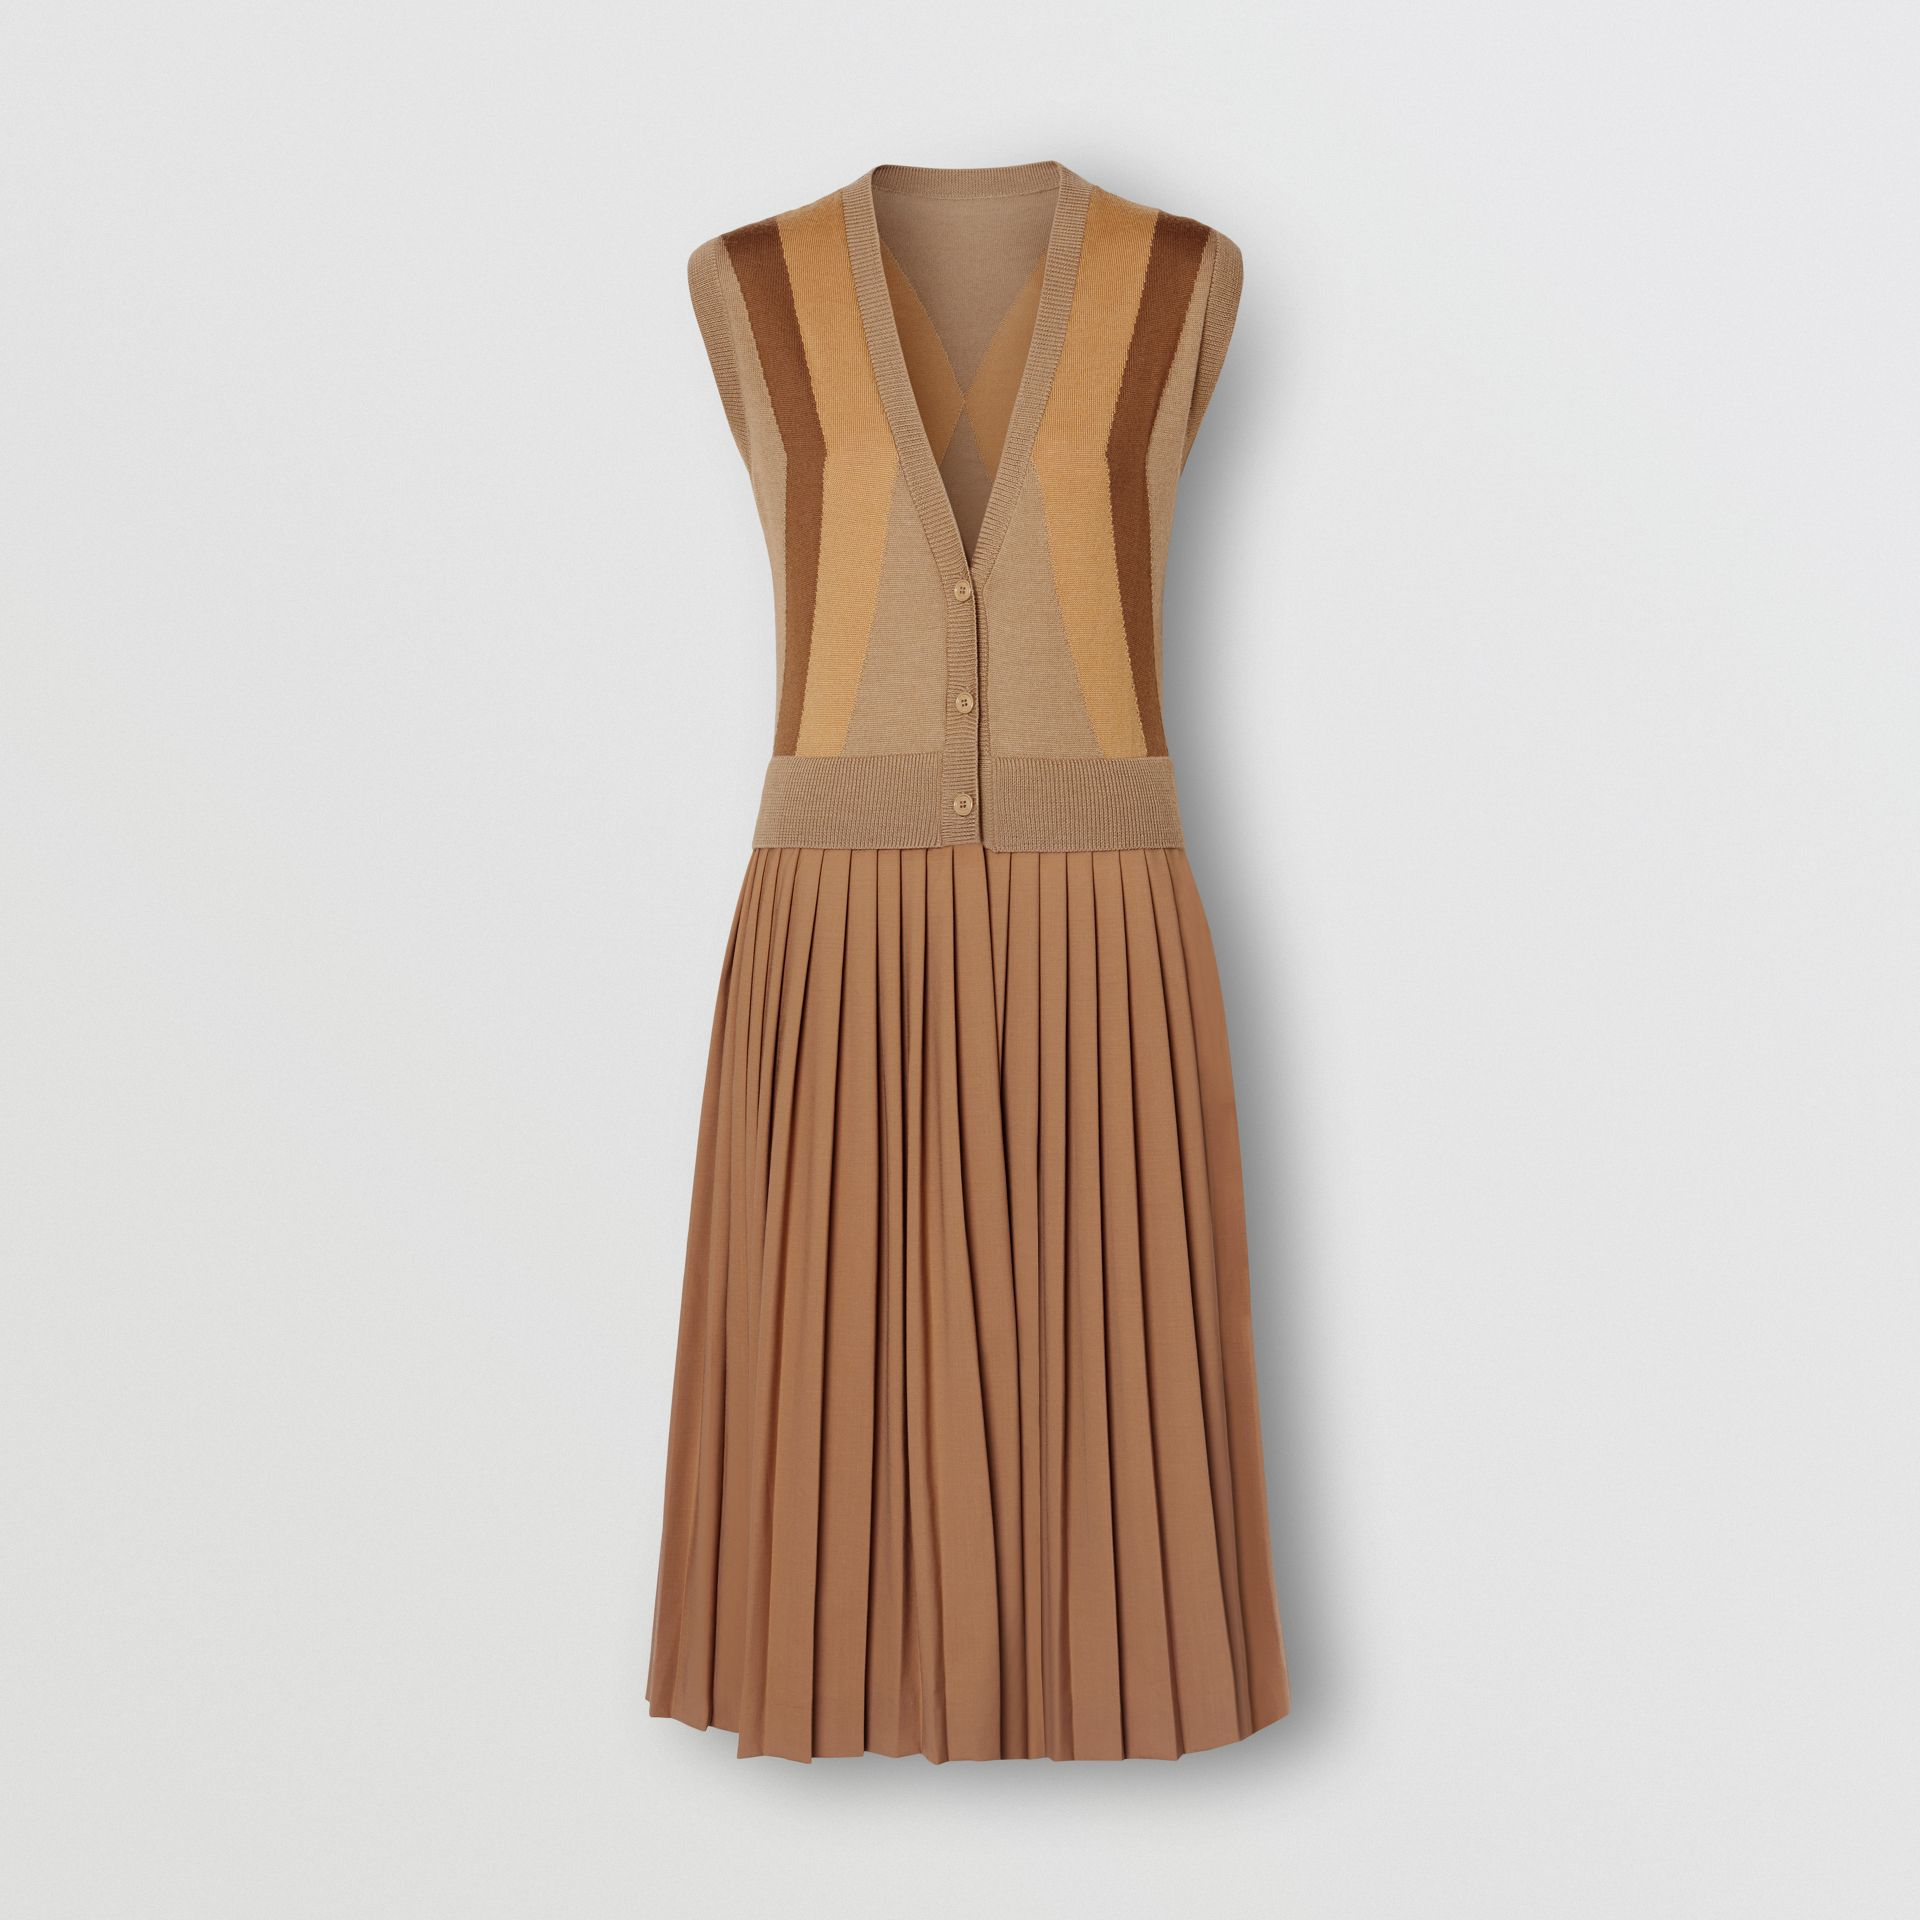 Sleeveless Knitted Wool V-neck Dress in Acorn - Women | Burberry United States - gallery image 3